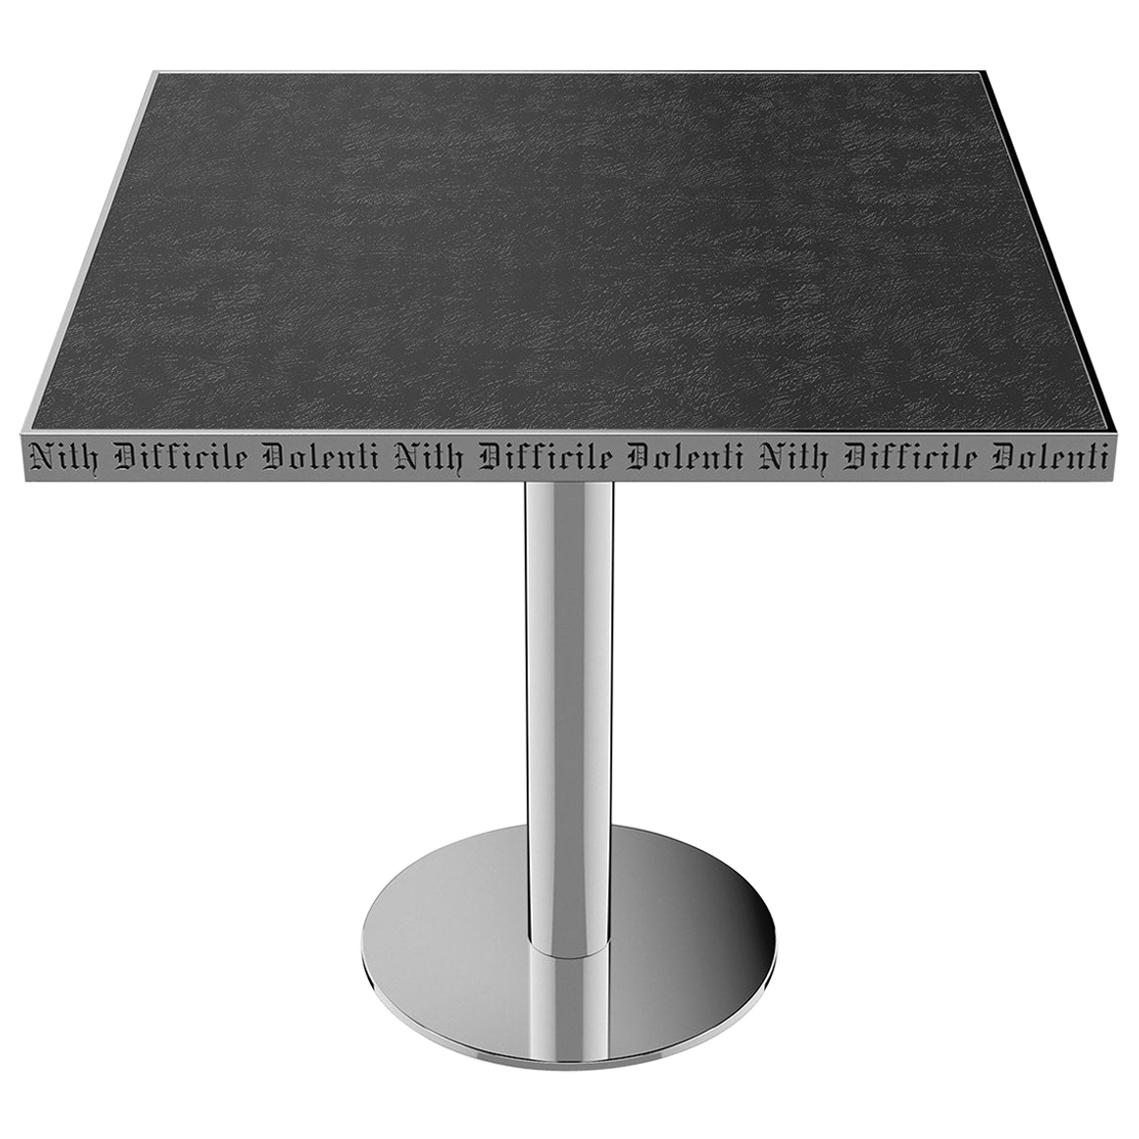 Table Pedestal Polish Stainless Steel Custom Lettering Laser Engrave Top Vetrite